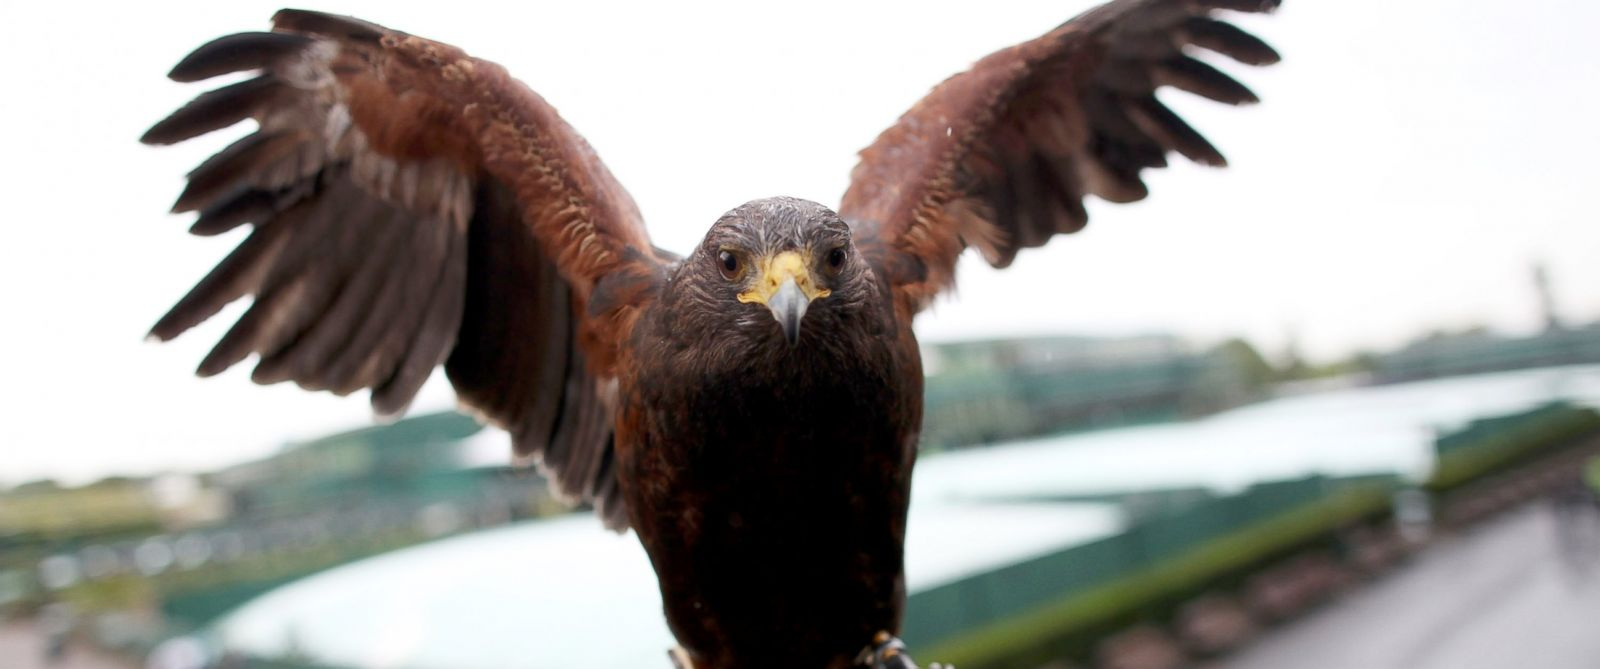 PHOTO: Rufus the Hawk poses for a photograph on day seven of the Wimbledon Lawn Tennis Championships at the All England Lawn Tennis and Croquet Club, July 2, 2012 in London.